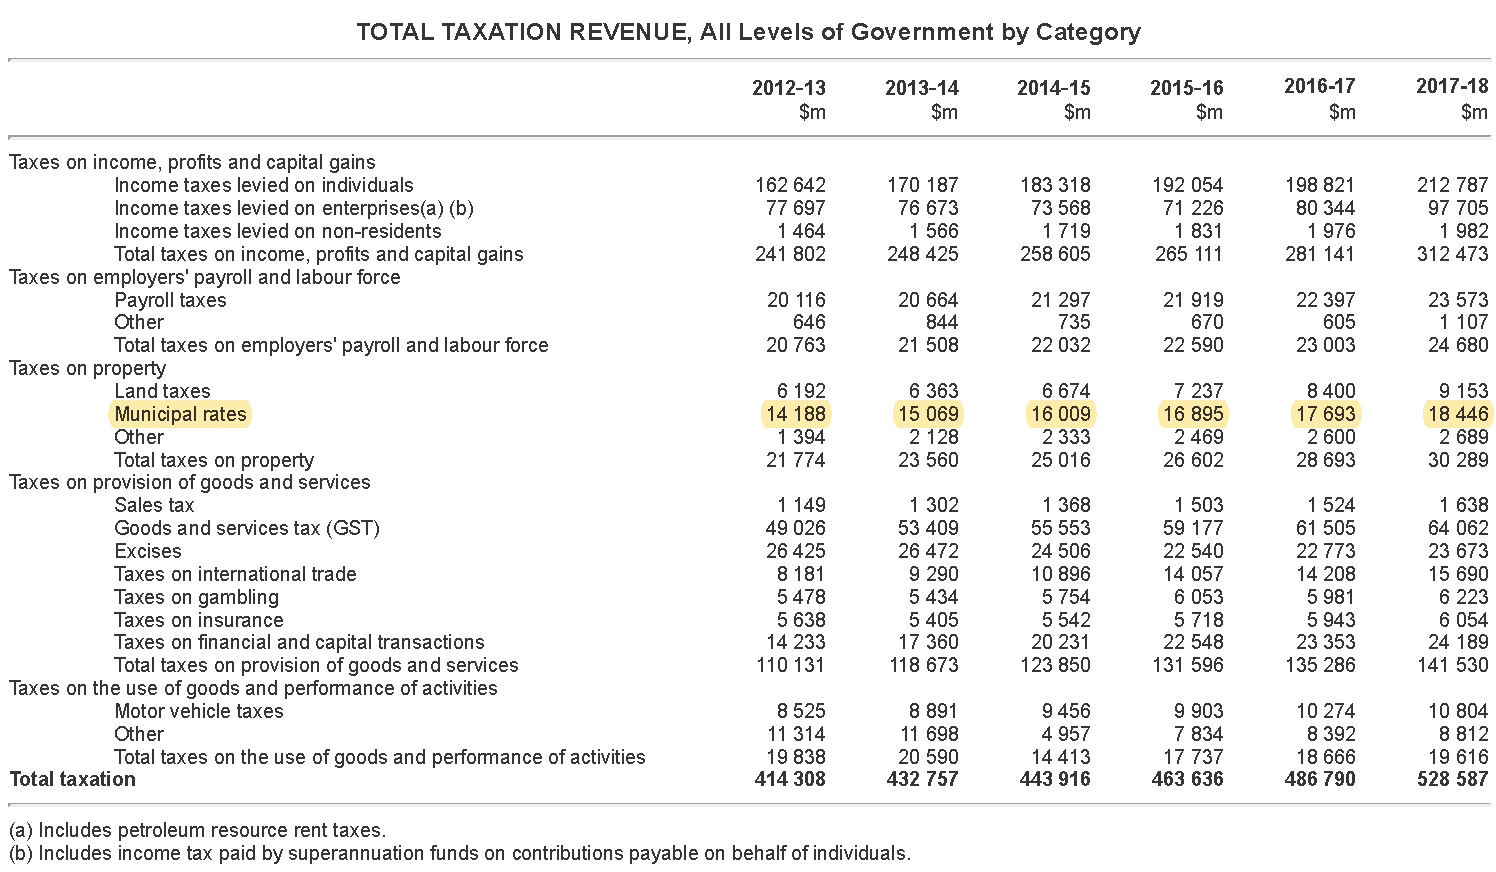 Total Taxation Revenue Distribution for all levels of Government